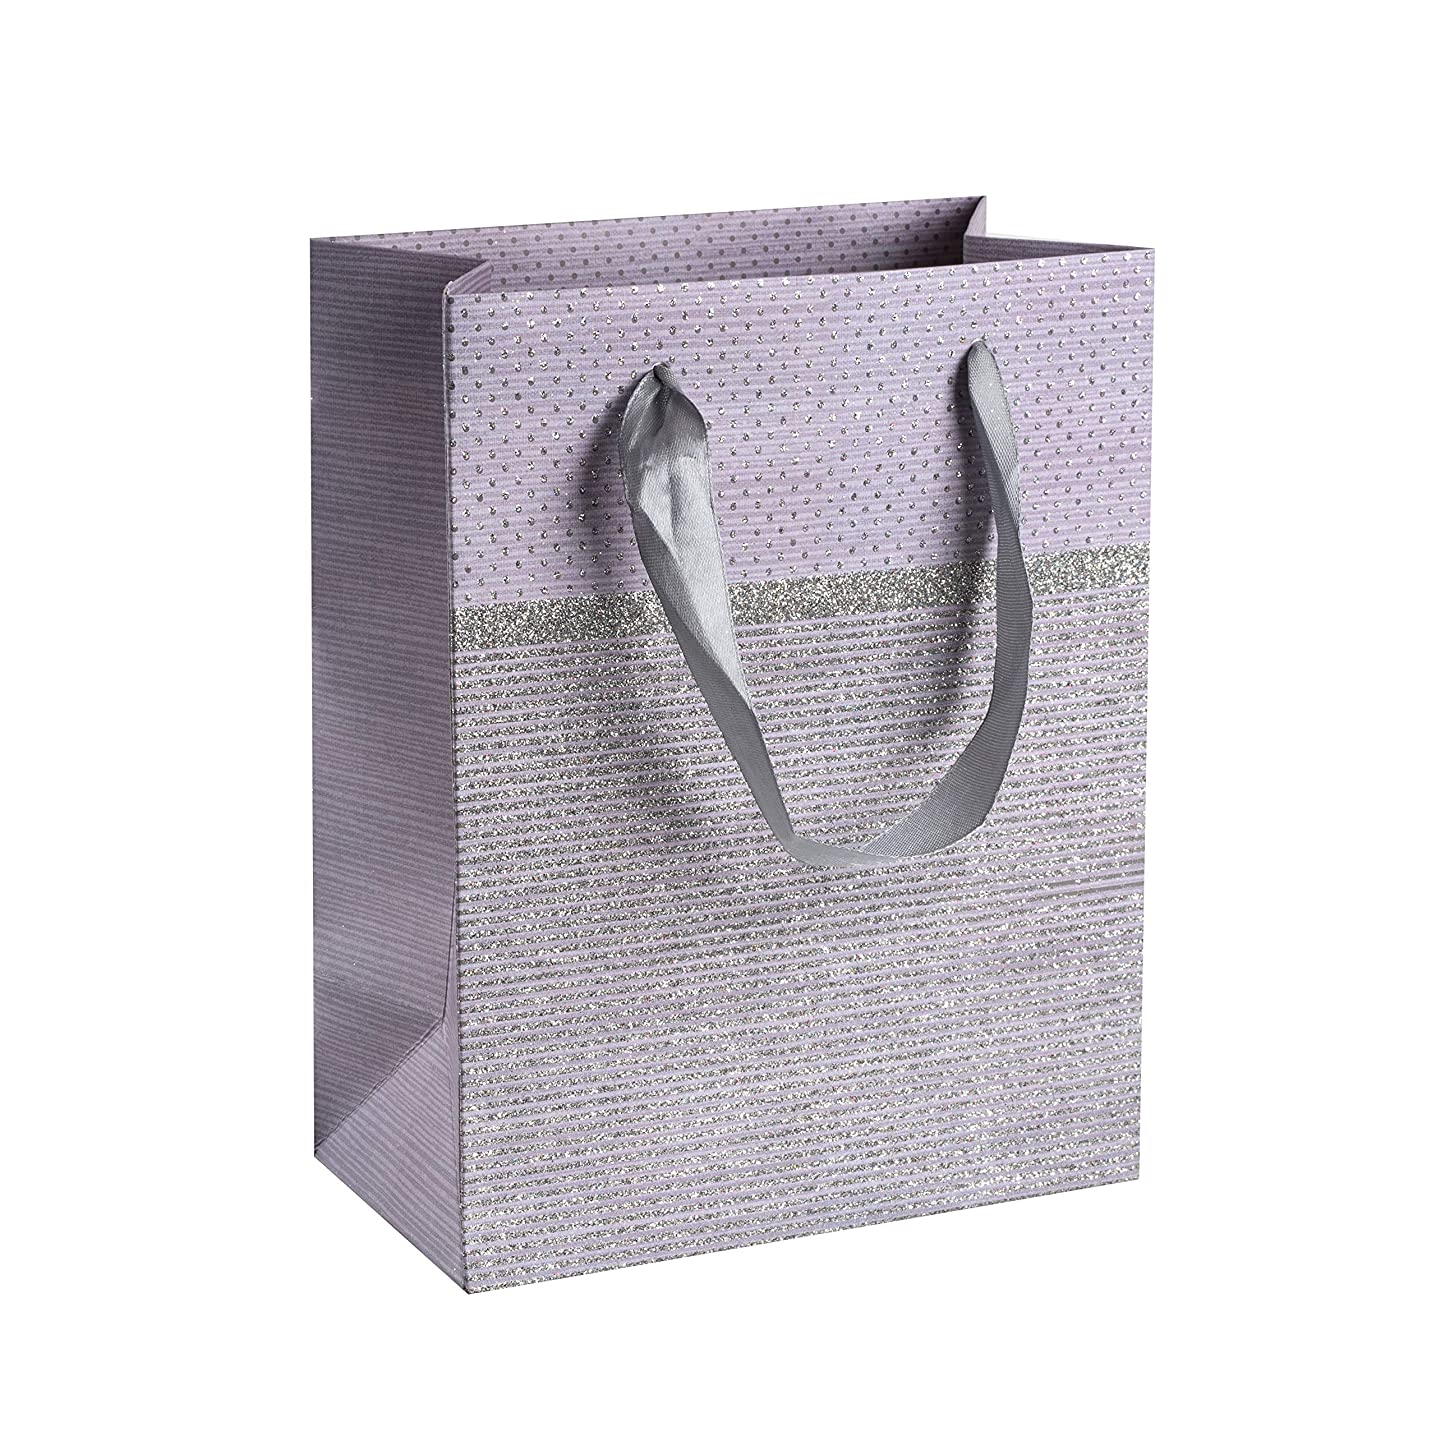 """Sparkling Glitter Gift Bags (12 Pack) - 9""""x 7""""x 4"""" Dotted Paper Bag with Durable Ribbon Handles, Beautiful Present Bags Best for Birthday, Wedding and Party Favors (Purple)"""